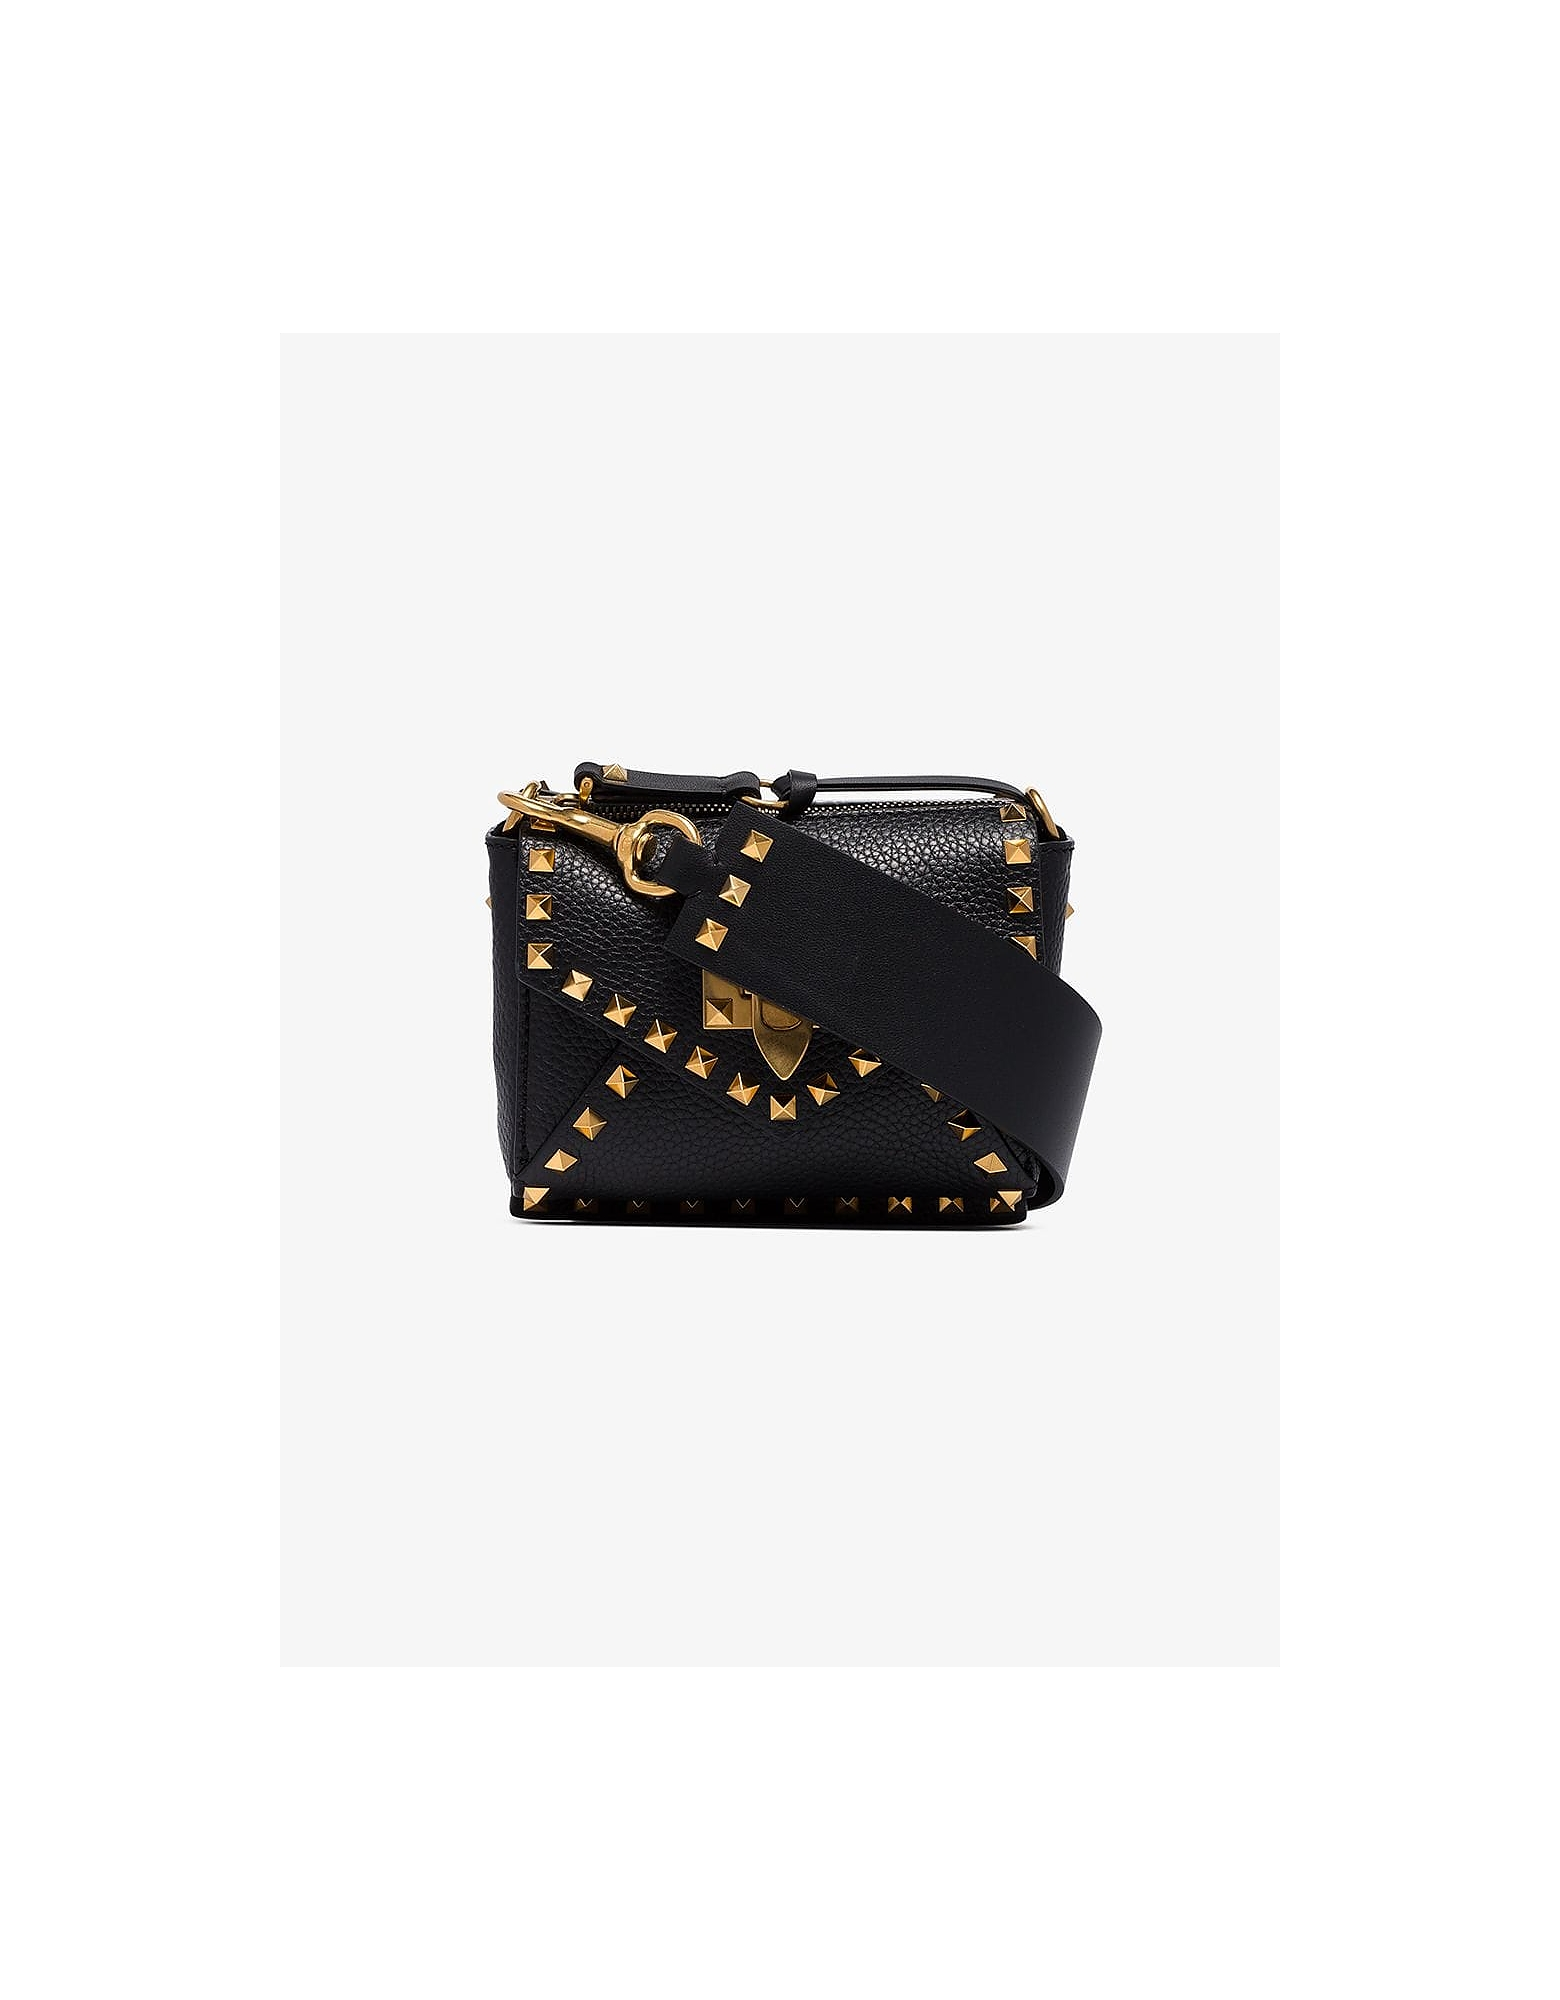 Valentino Designer Handbags, Black Garavani Rockstud Hype Mini Shoulder Bag